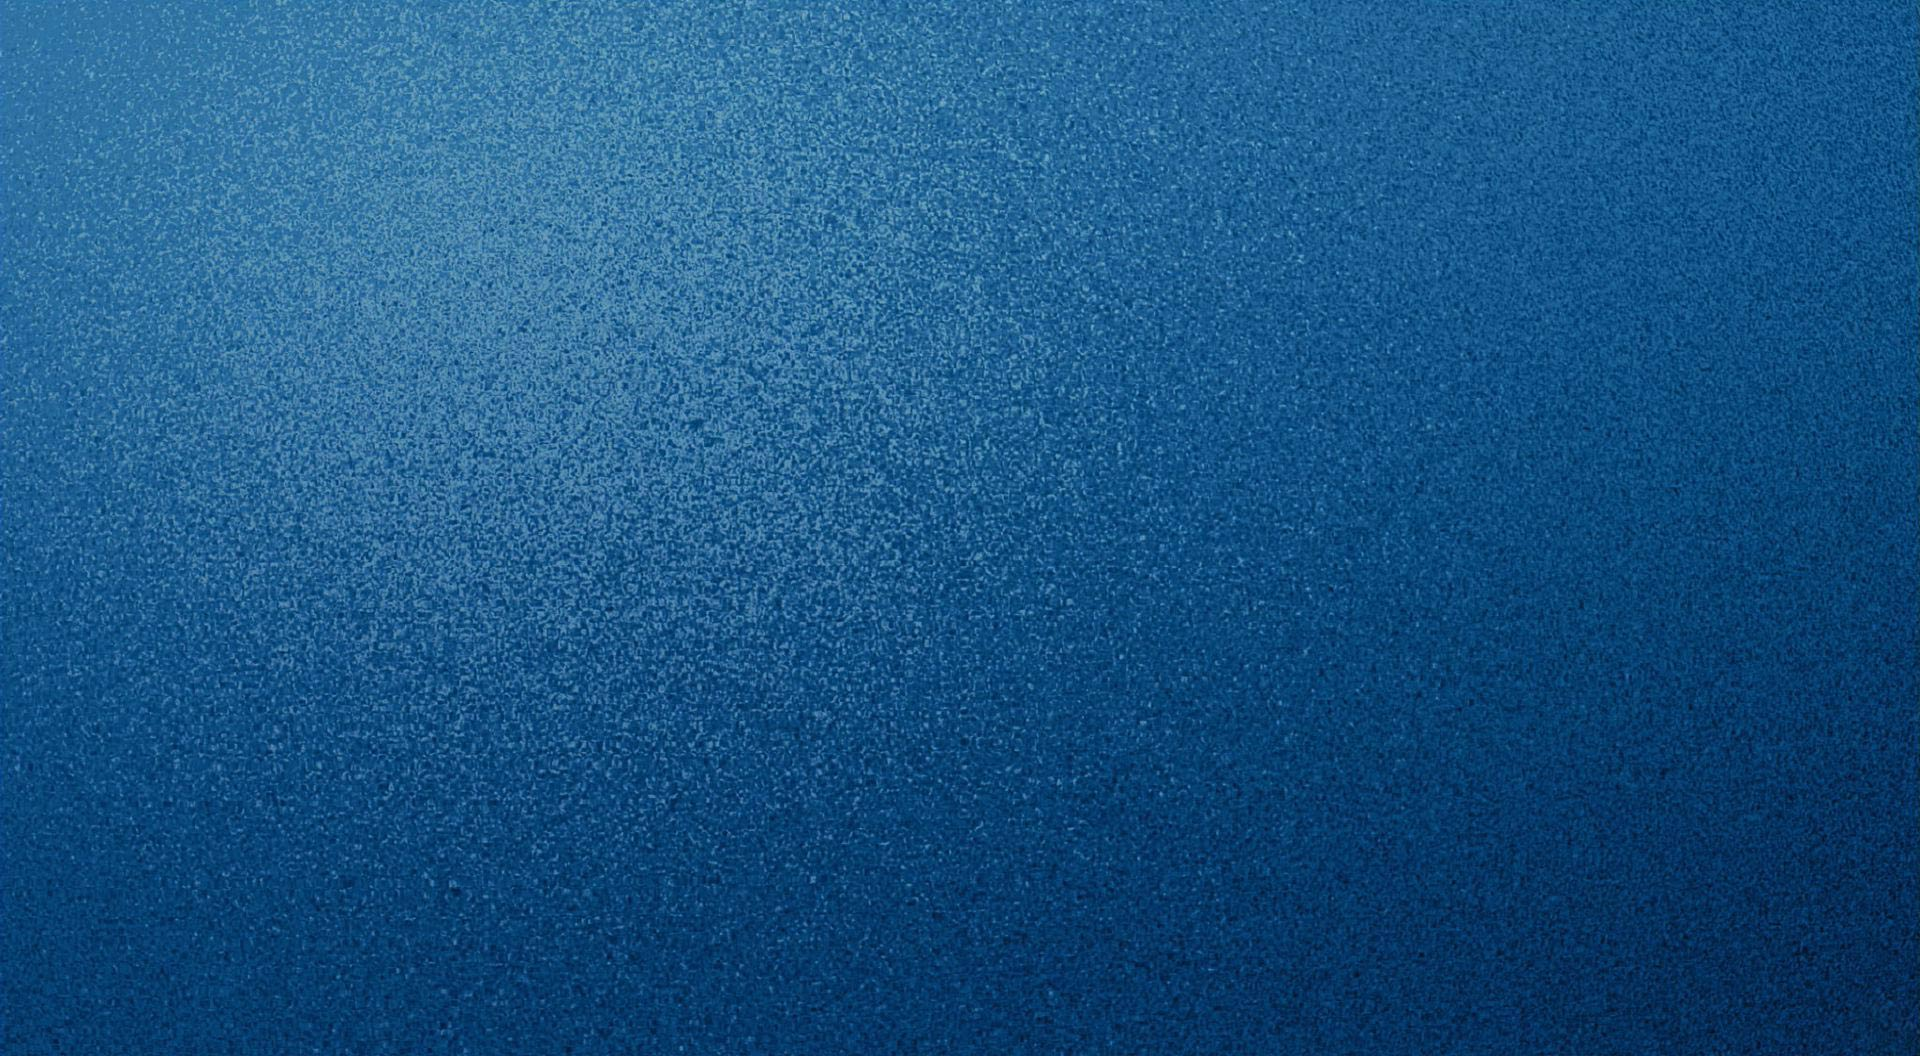 Blue textured speckled desktop background wallpaper for use with Mac 1920x1056